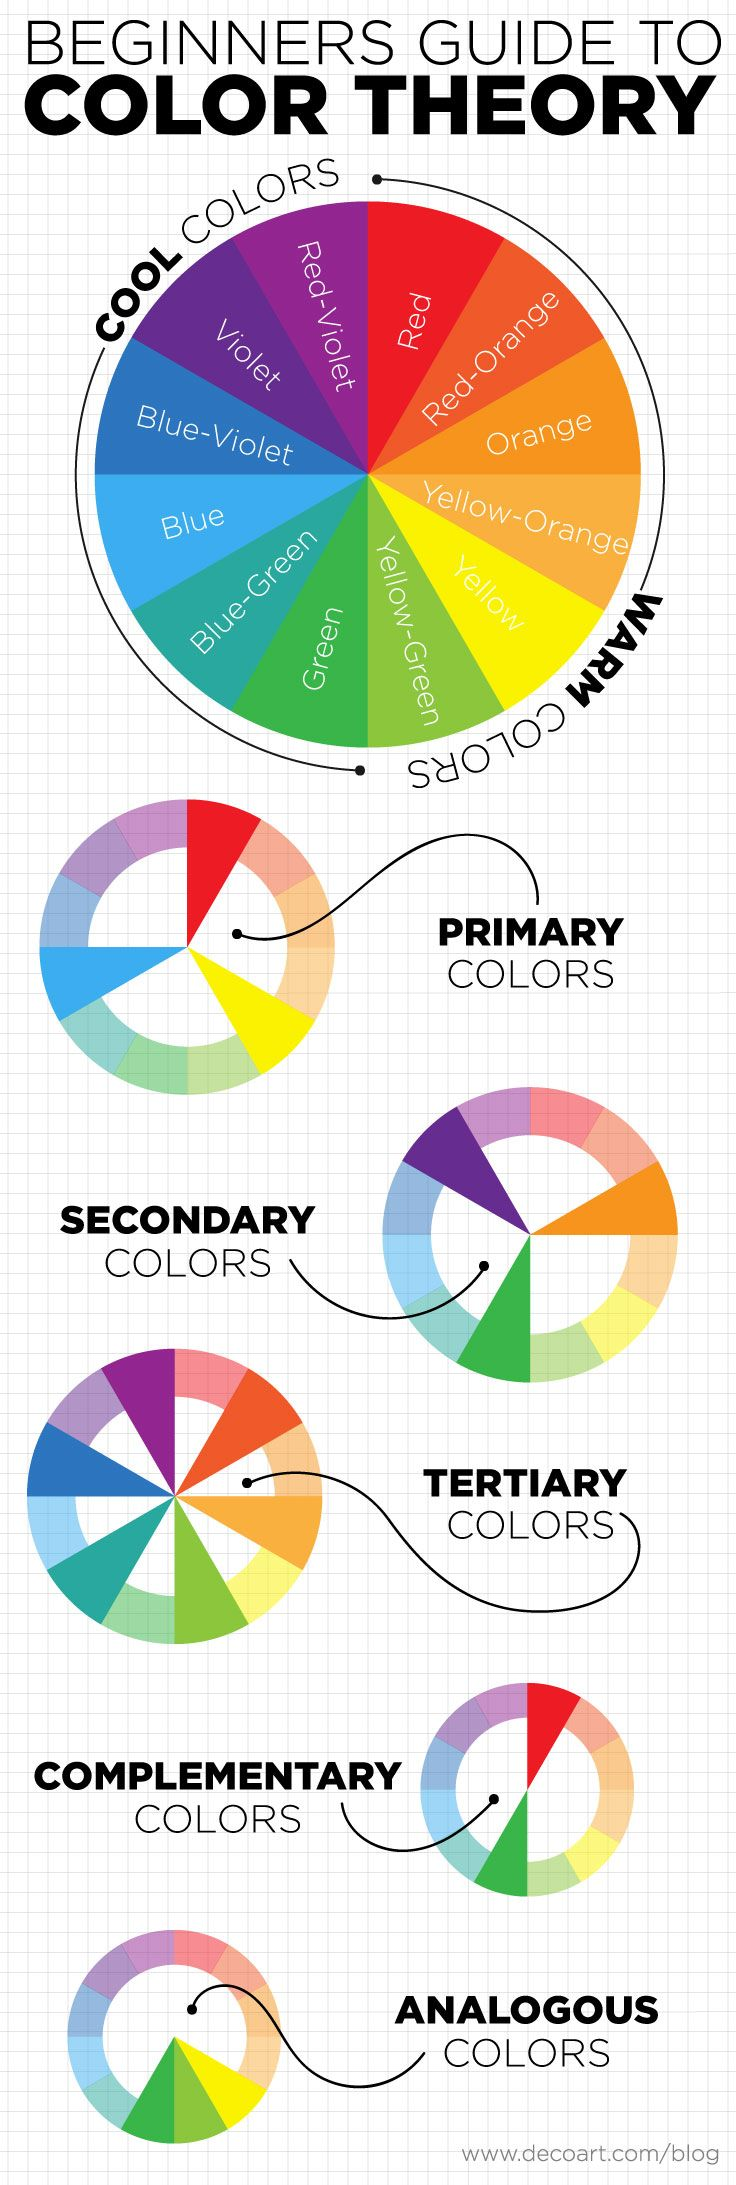 DecoArt Blog - Color Theory Basics: The Color Wheel